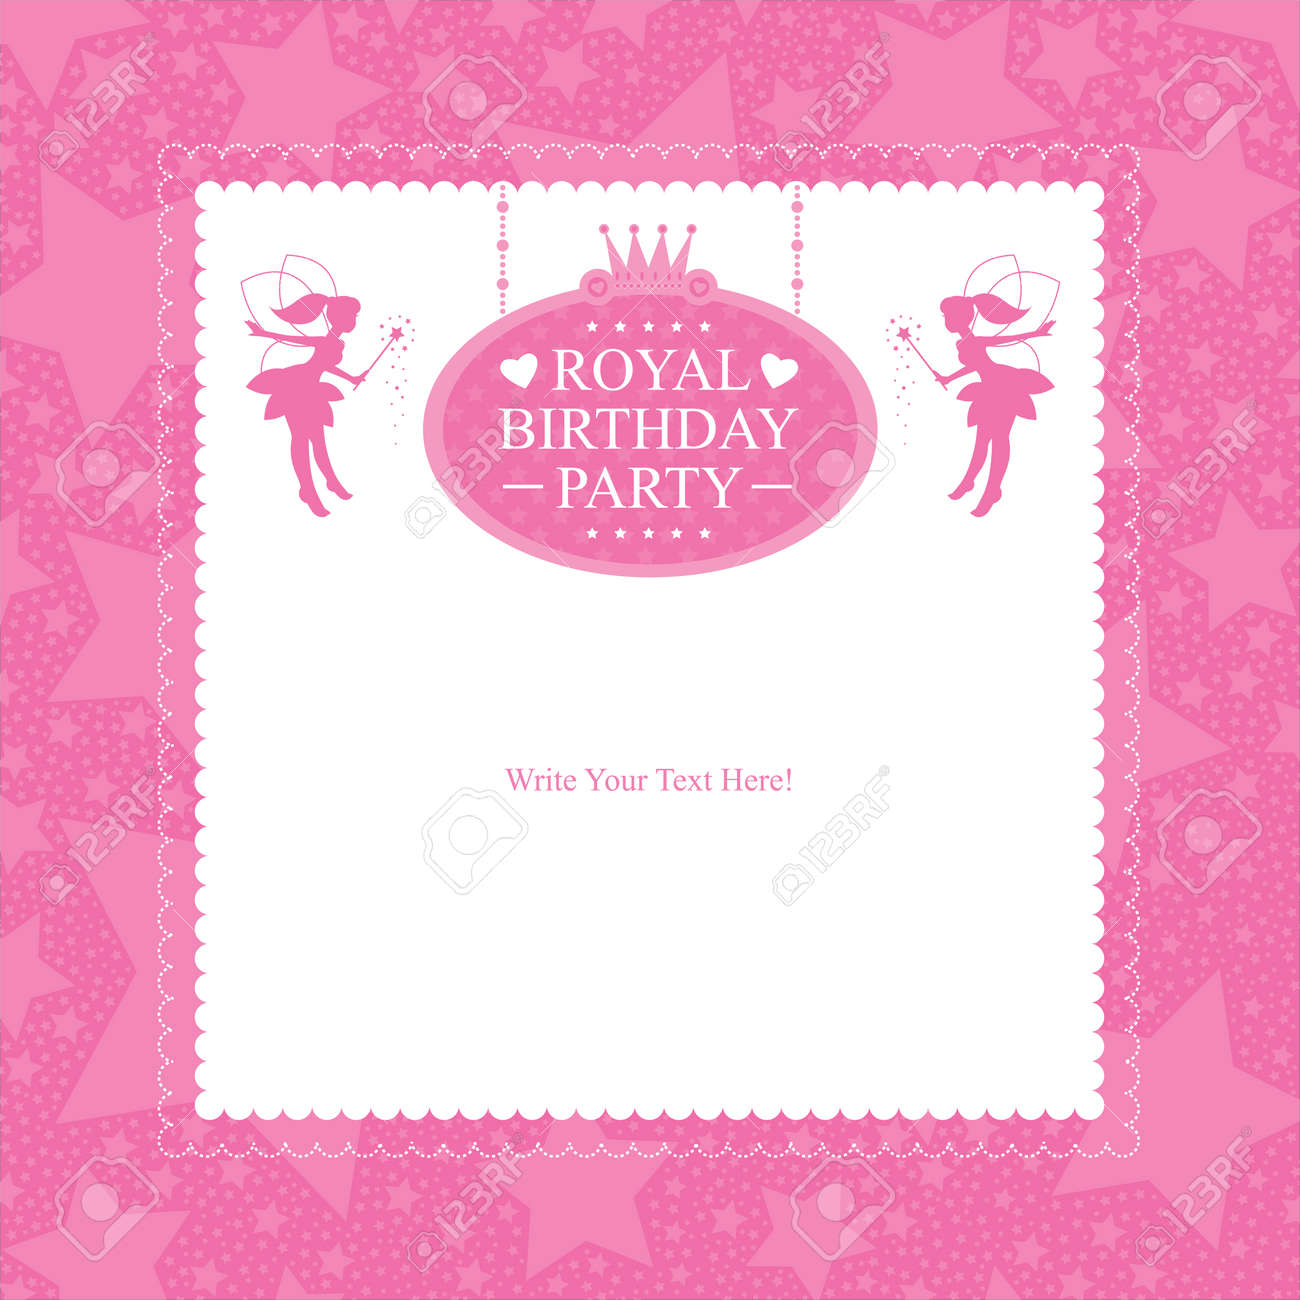 Princess birthday invitation card design royalty free cliparts princess birthday invitation card design stock vector 31391660 stopboris Choice Image